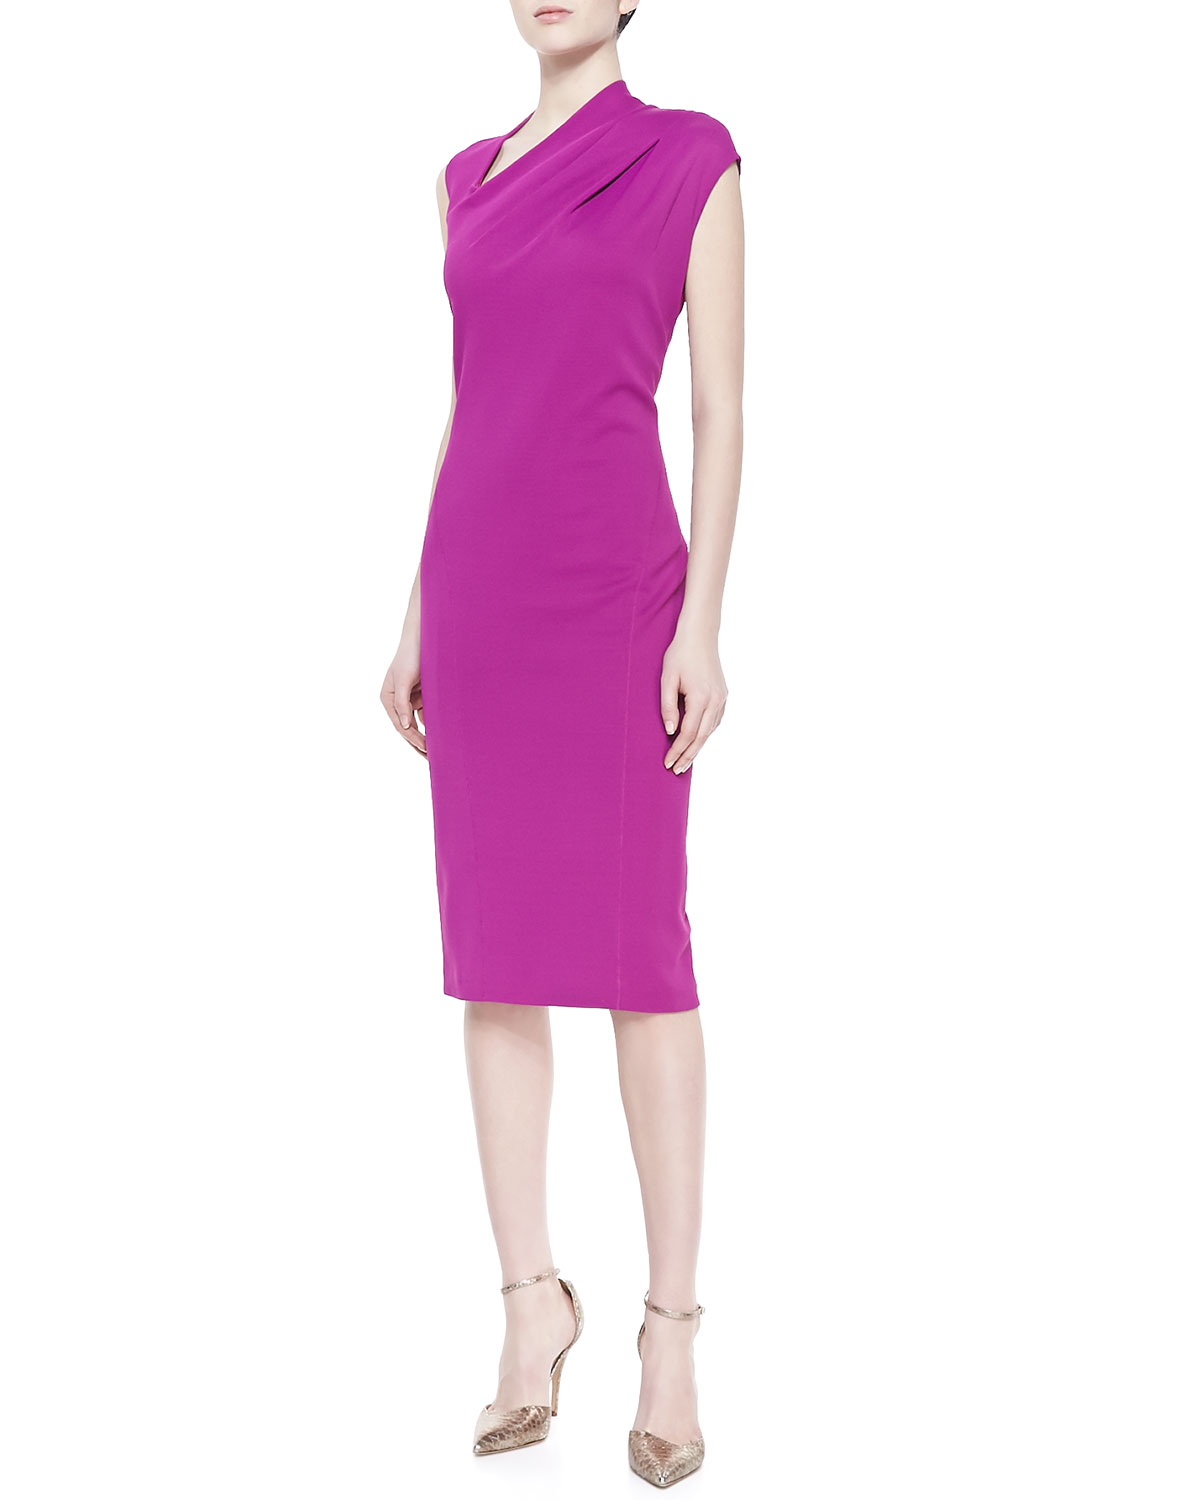 Womens Cap Sleeve Knee Length Dress   Donna Karan   Spinel (MEDIUM)